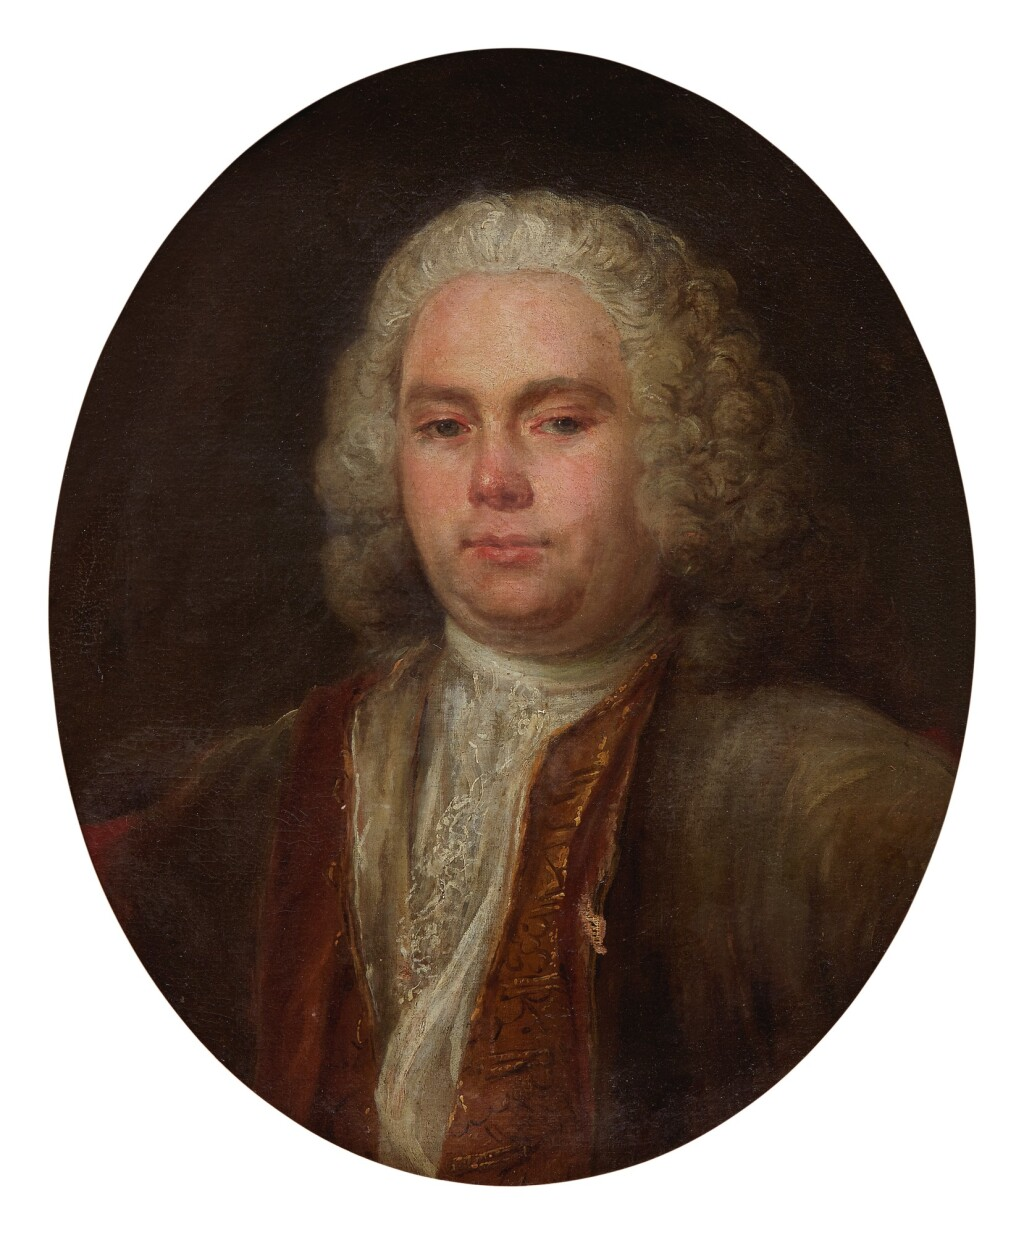 FRENCH SCHOOL, CIRCA 1750   PORTRAIT OF A GENTLEMAN, BUST LENGTH, WEARING A GREY AND RED COAT, WITH A WHITE CHEMISE